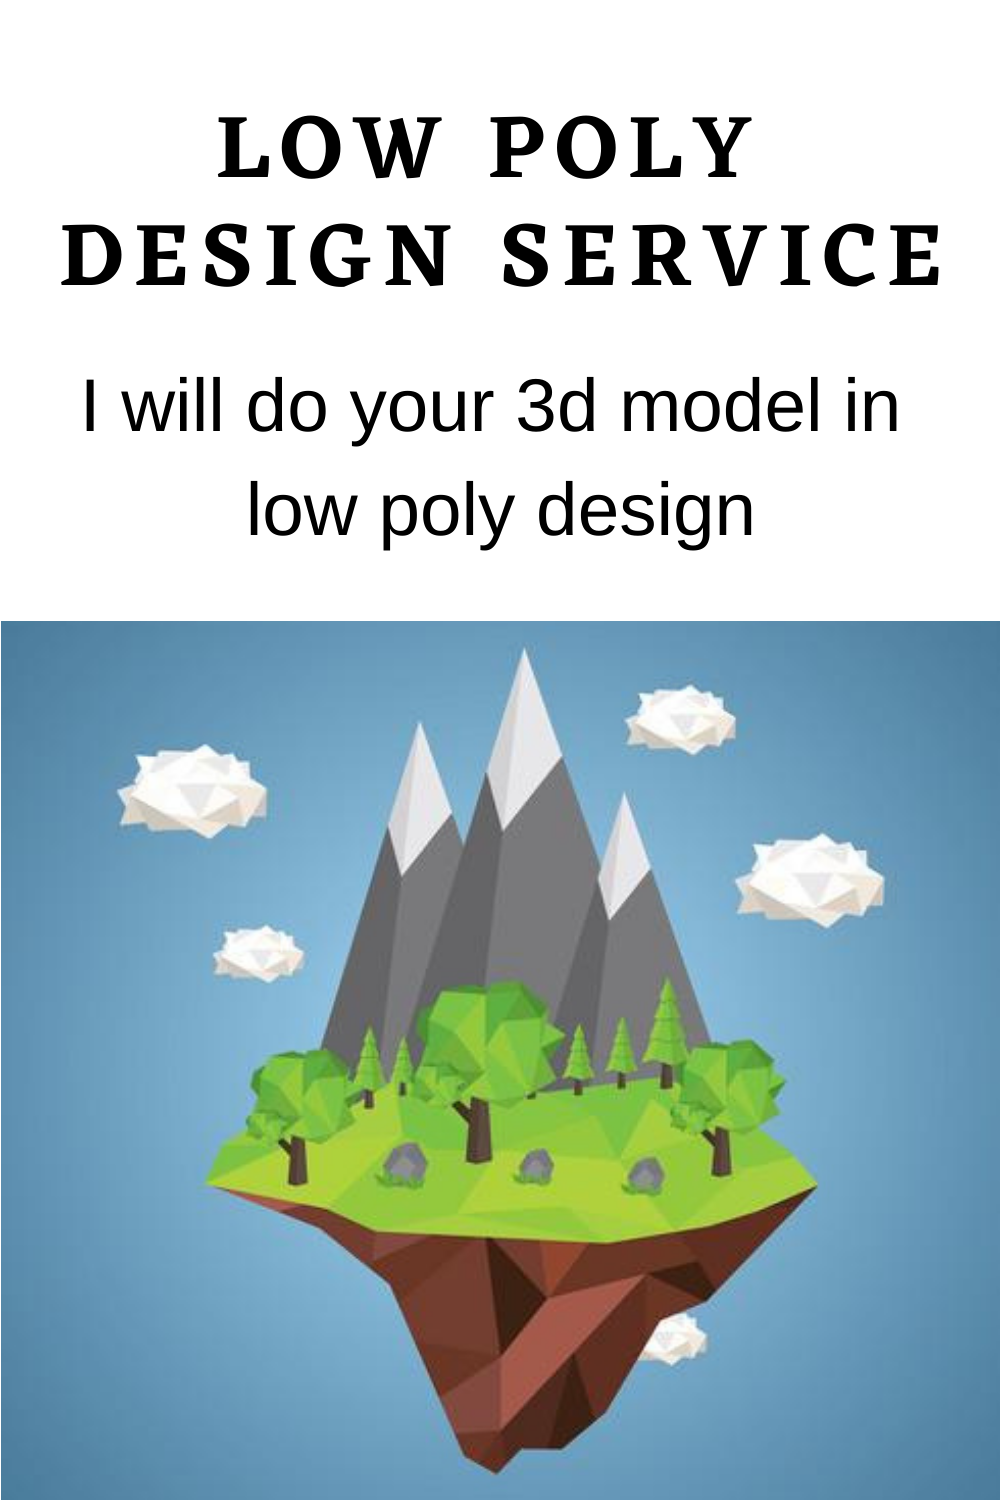 I will do your 3d model in low poly design, #3dlowpolyface #3dlowpolyfruit #3dlowpolycharacterfree #3dlowpolytreefree #3dmodellowpolyfish #3dlowpolyscifi #3dlowpolygames #3dlowpolygrass #3dlowpolygraphics #3dlowpolygarden #3dlowpolymobilegames #3dlowpolyhead #3dlowpolyhair #3dlowpolyhuman #3dlowpolyhat #free3dlowpolyhouse #3dmodellowpolyhotairballoon #3dmodelinglowpolyhair #3dlowpolyisland #lowpolyisland3dmodel #lowpolyiphone3dmodel #lowpoly3disometric #5lowpolybikes3d